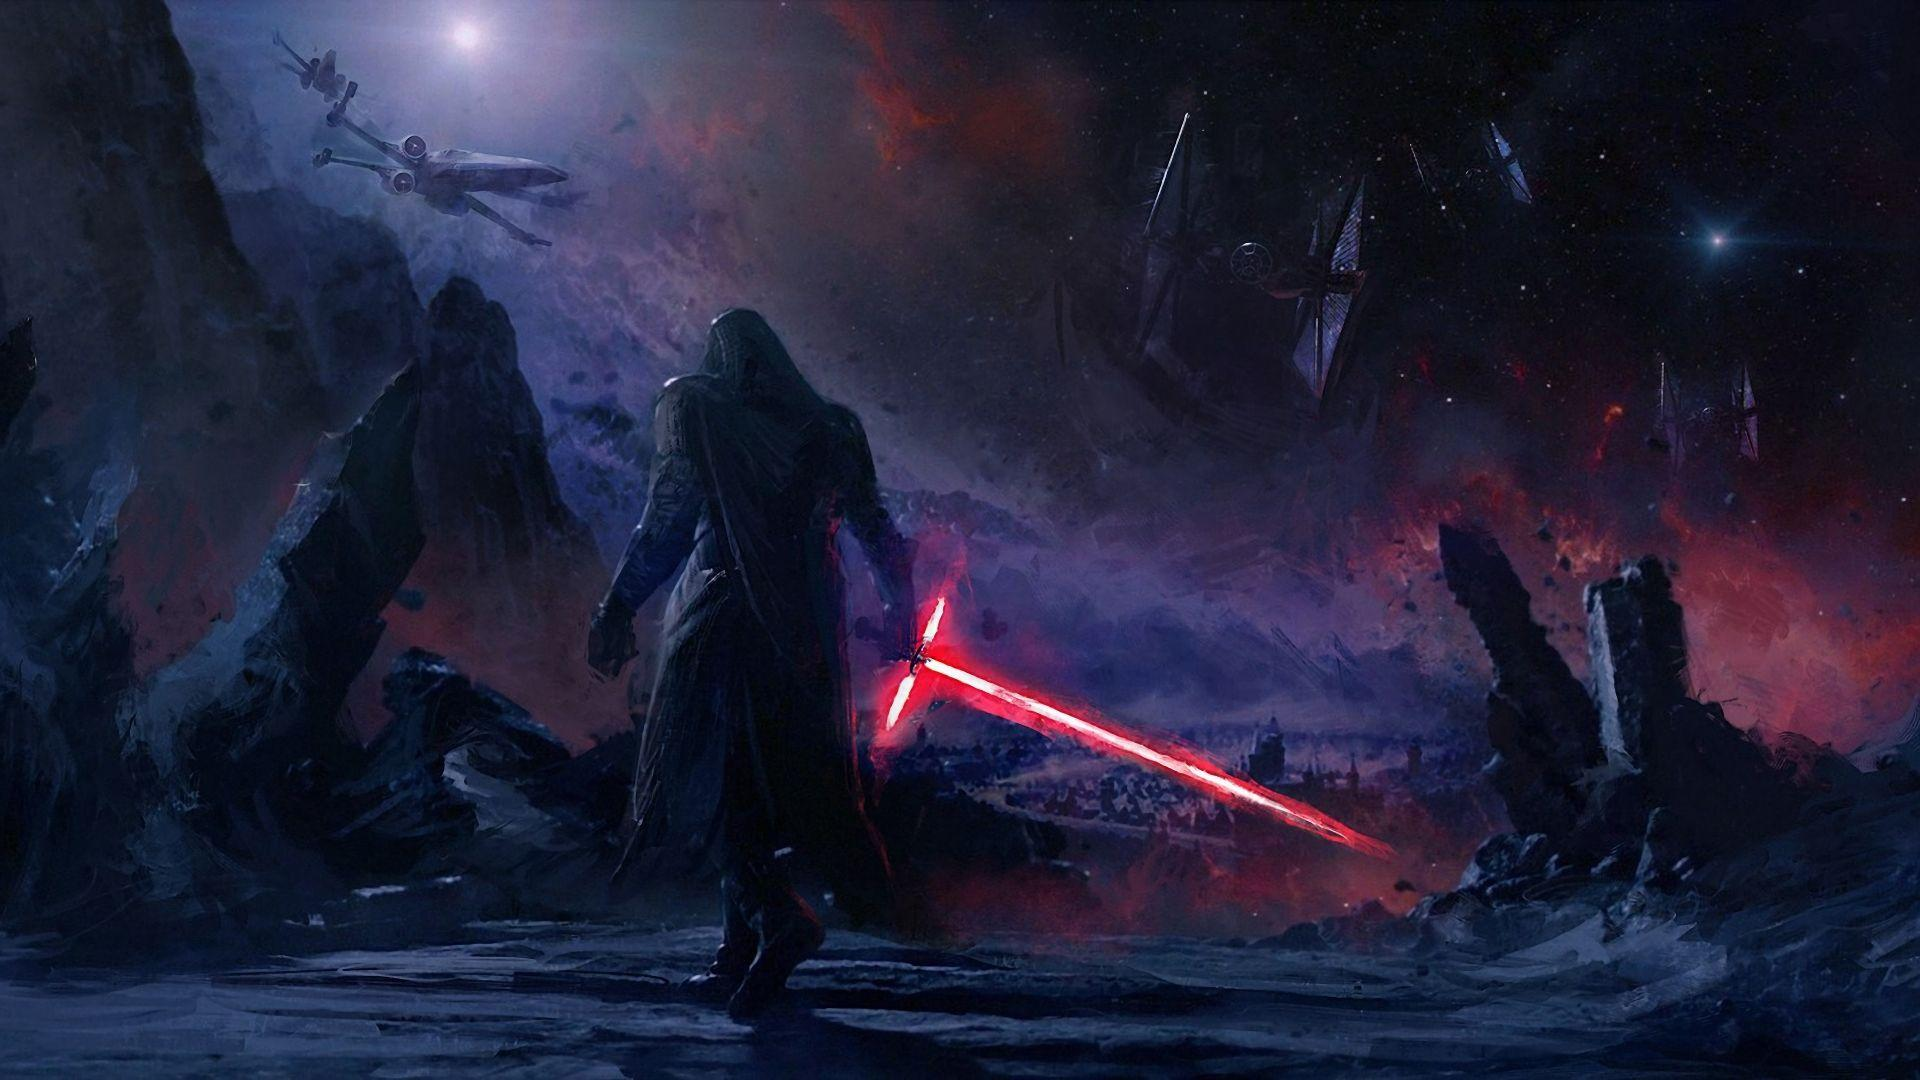 Download Kylo Ren Star Wars Art 1280x960 Resolution, Full HD Wallpapers